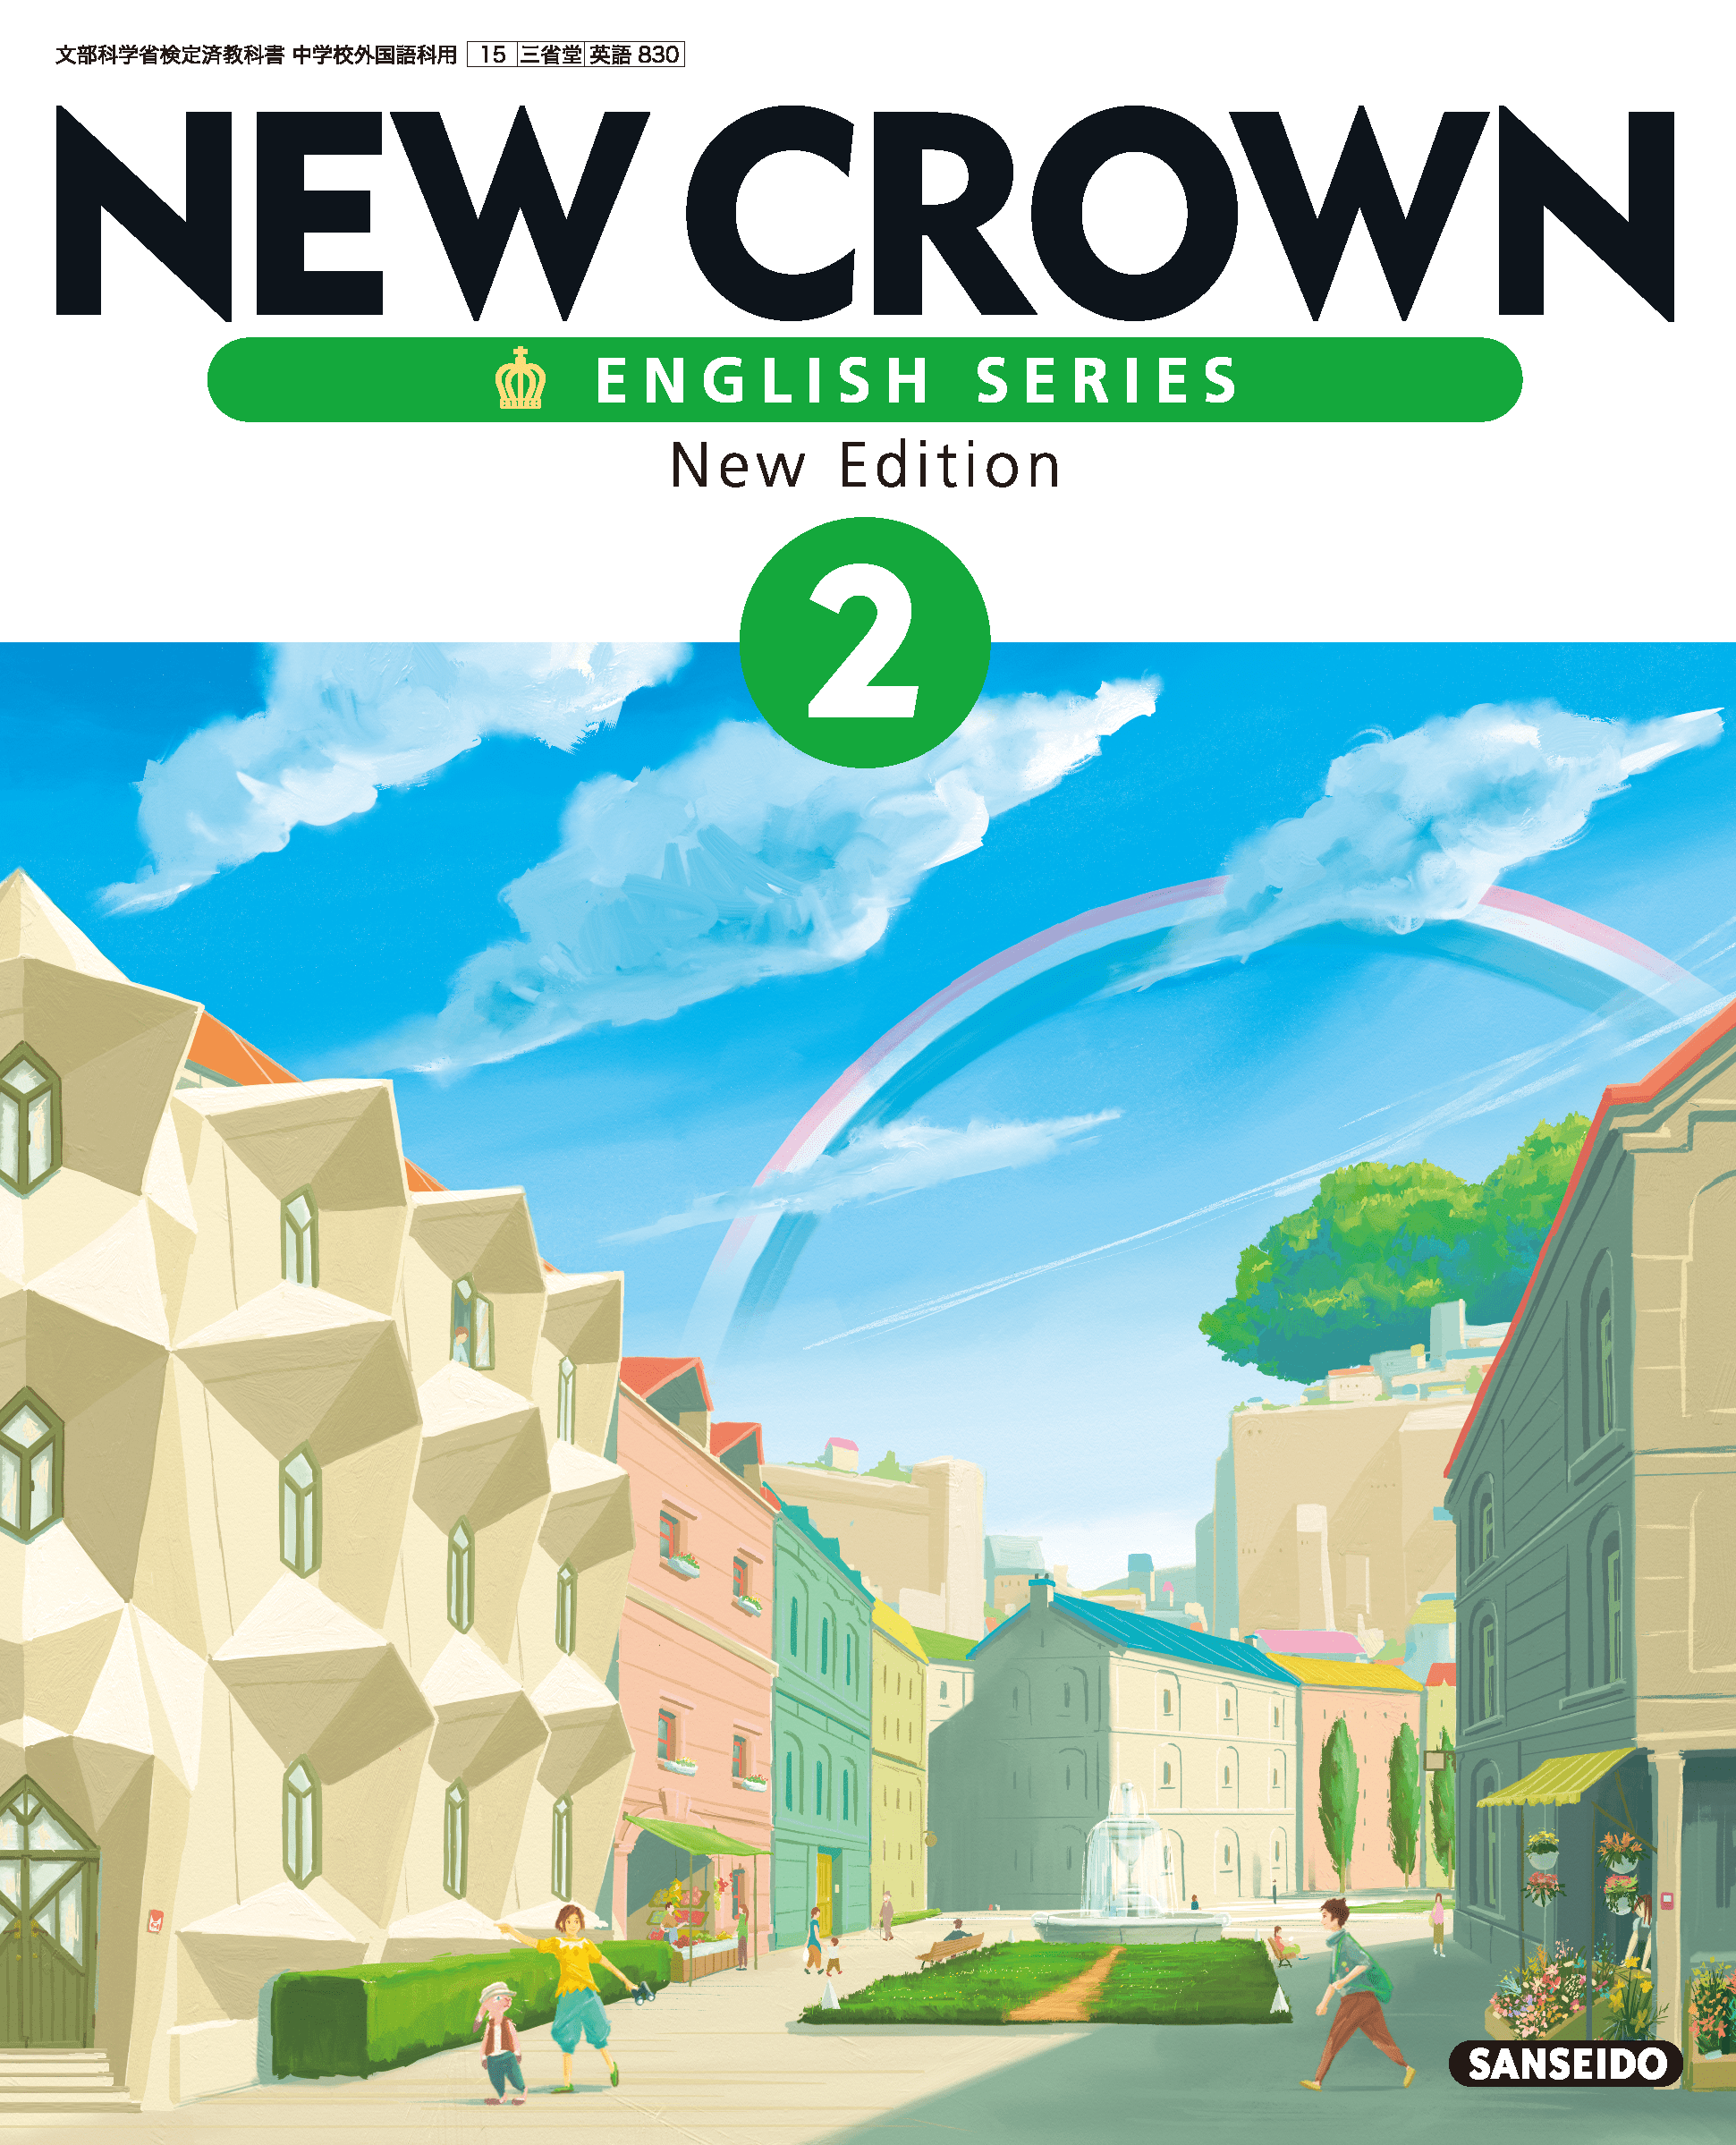 NEW CROWN ENGLISH SERIES 1 New Edition